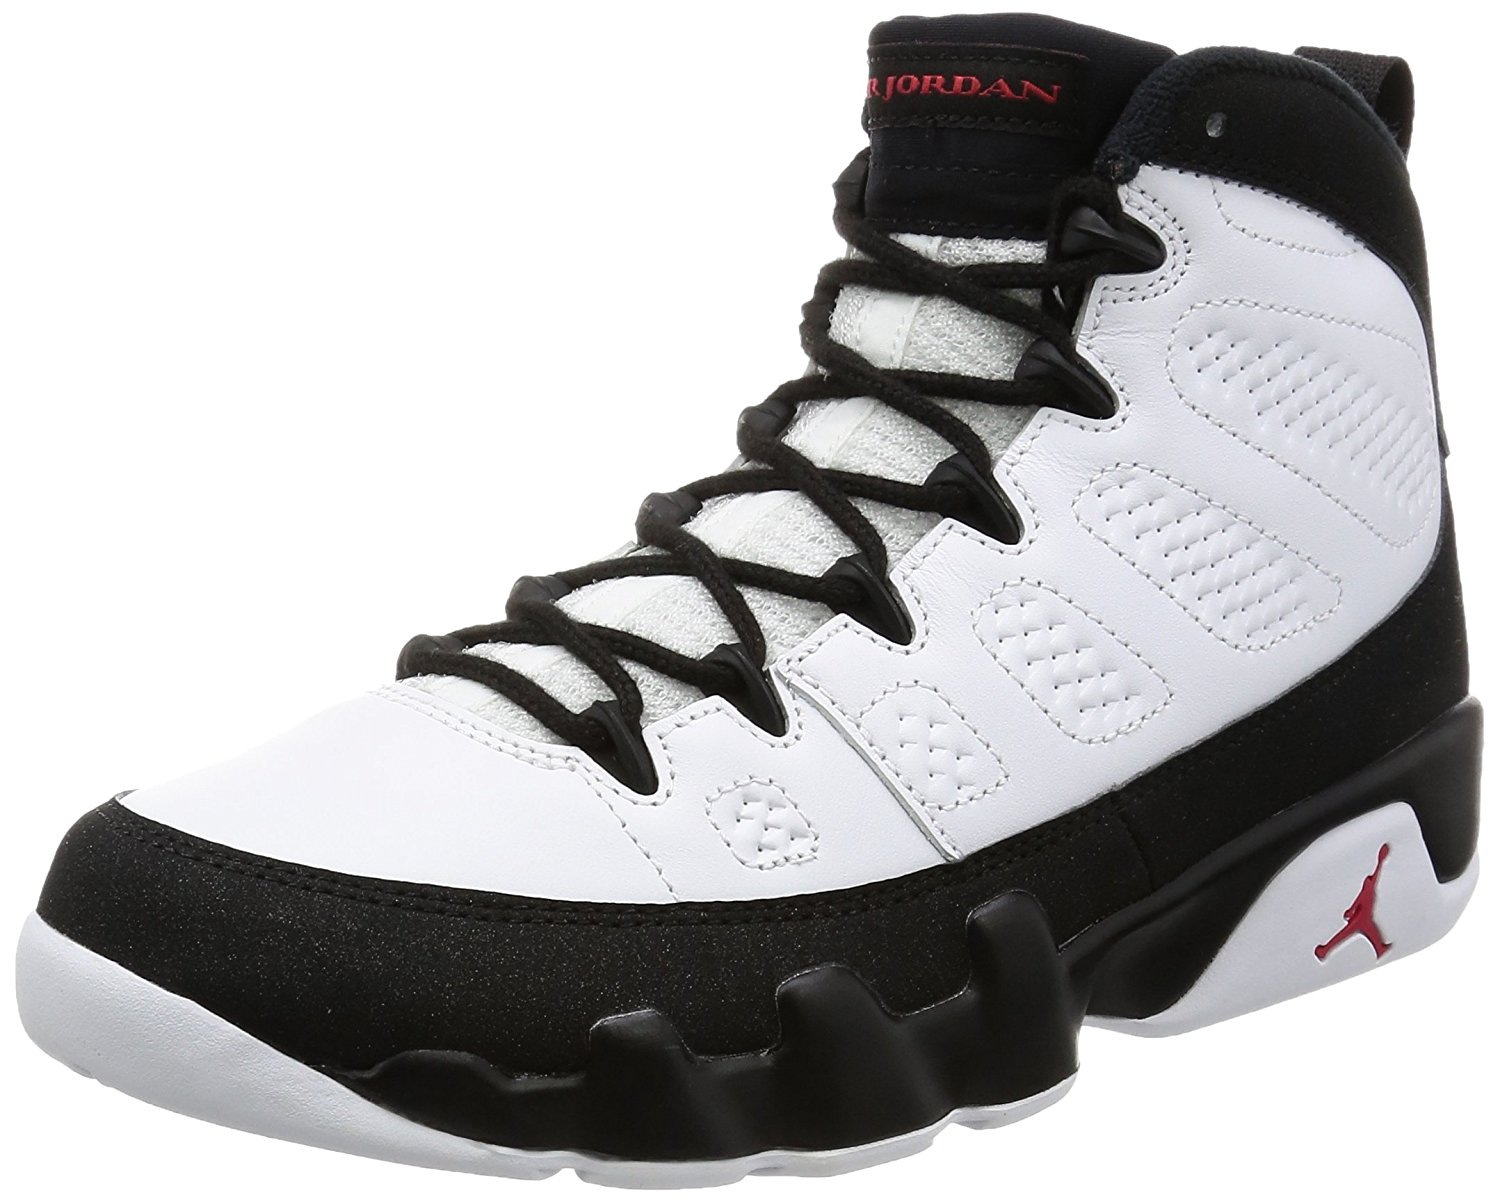 best loved 9367e 9485b Buy Nike Mens Air Jordan 9 Retro Playoff White/True Red-Black Leather Size  9.5 in Cheap Price on m.alibaba.com